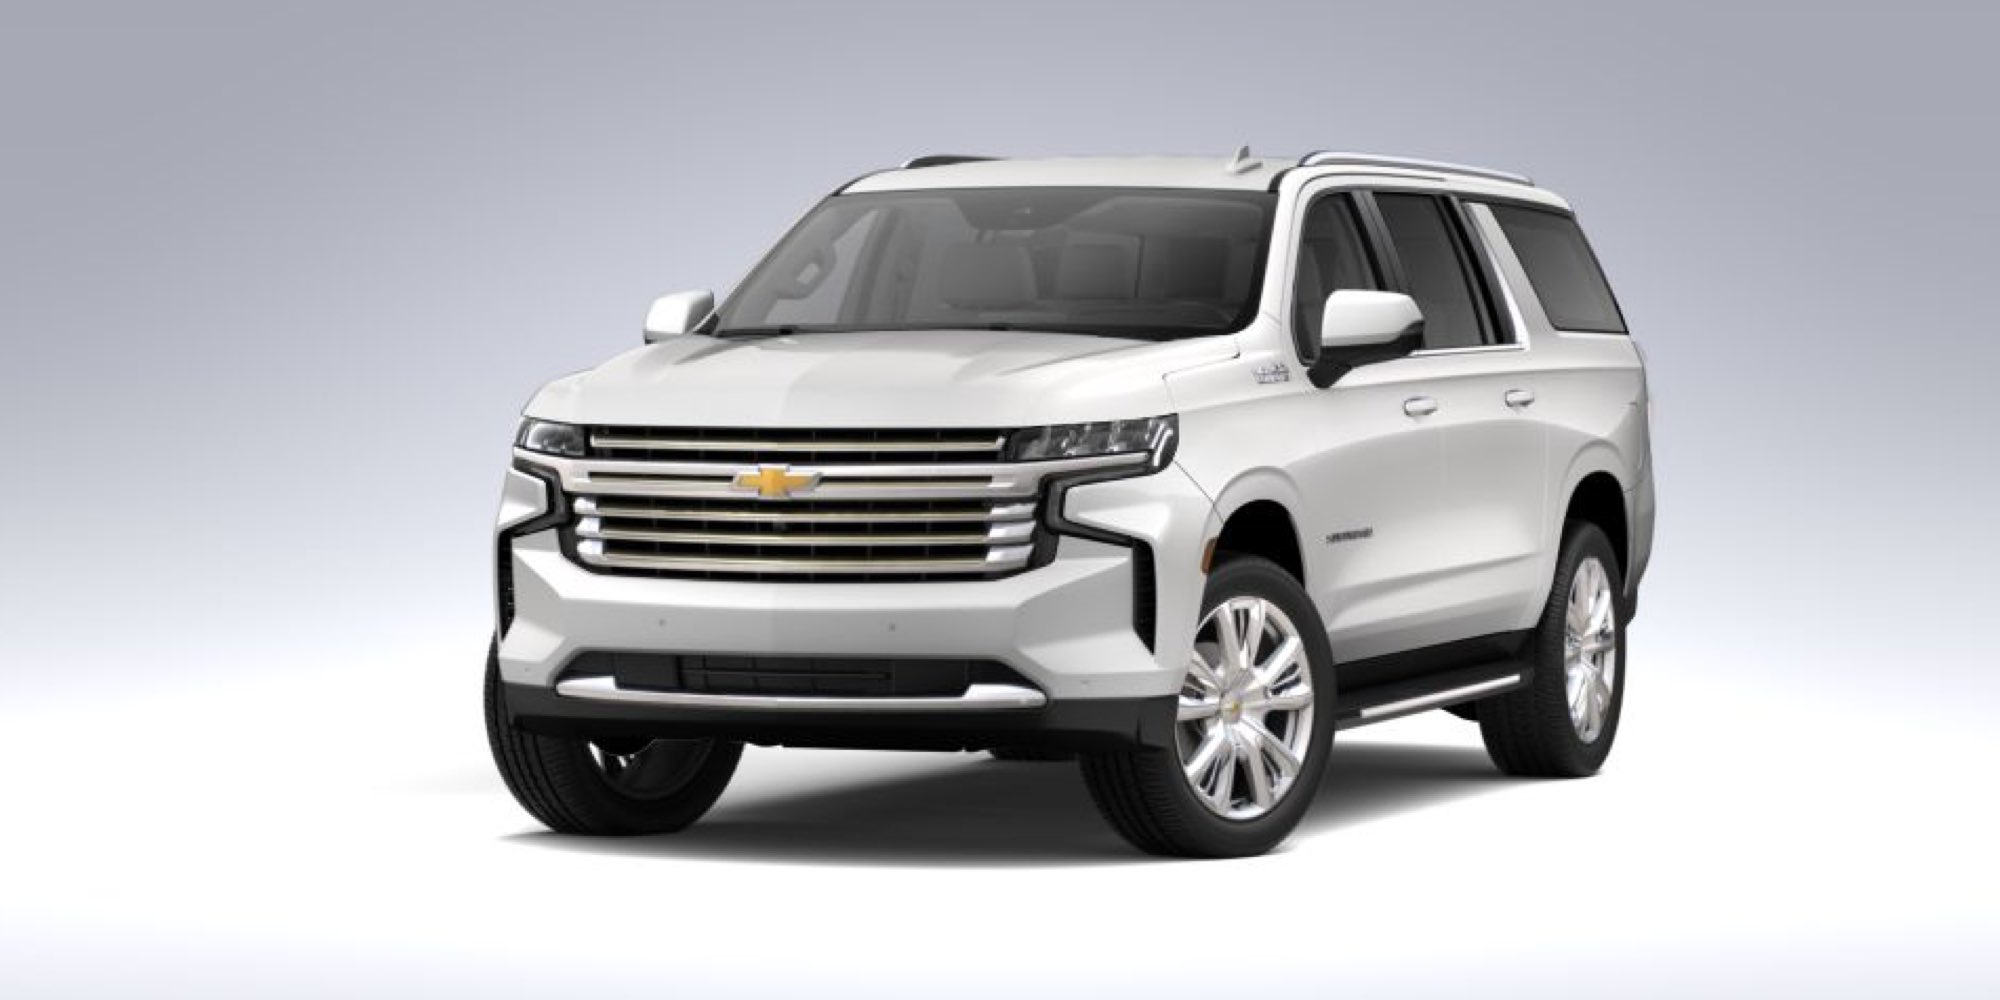 2021 Chevy Suburban in Iridescent Pearl Tricoat